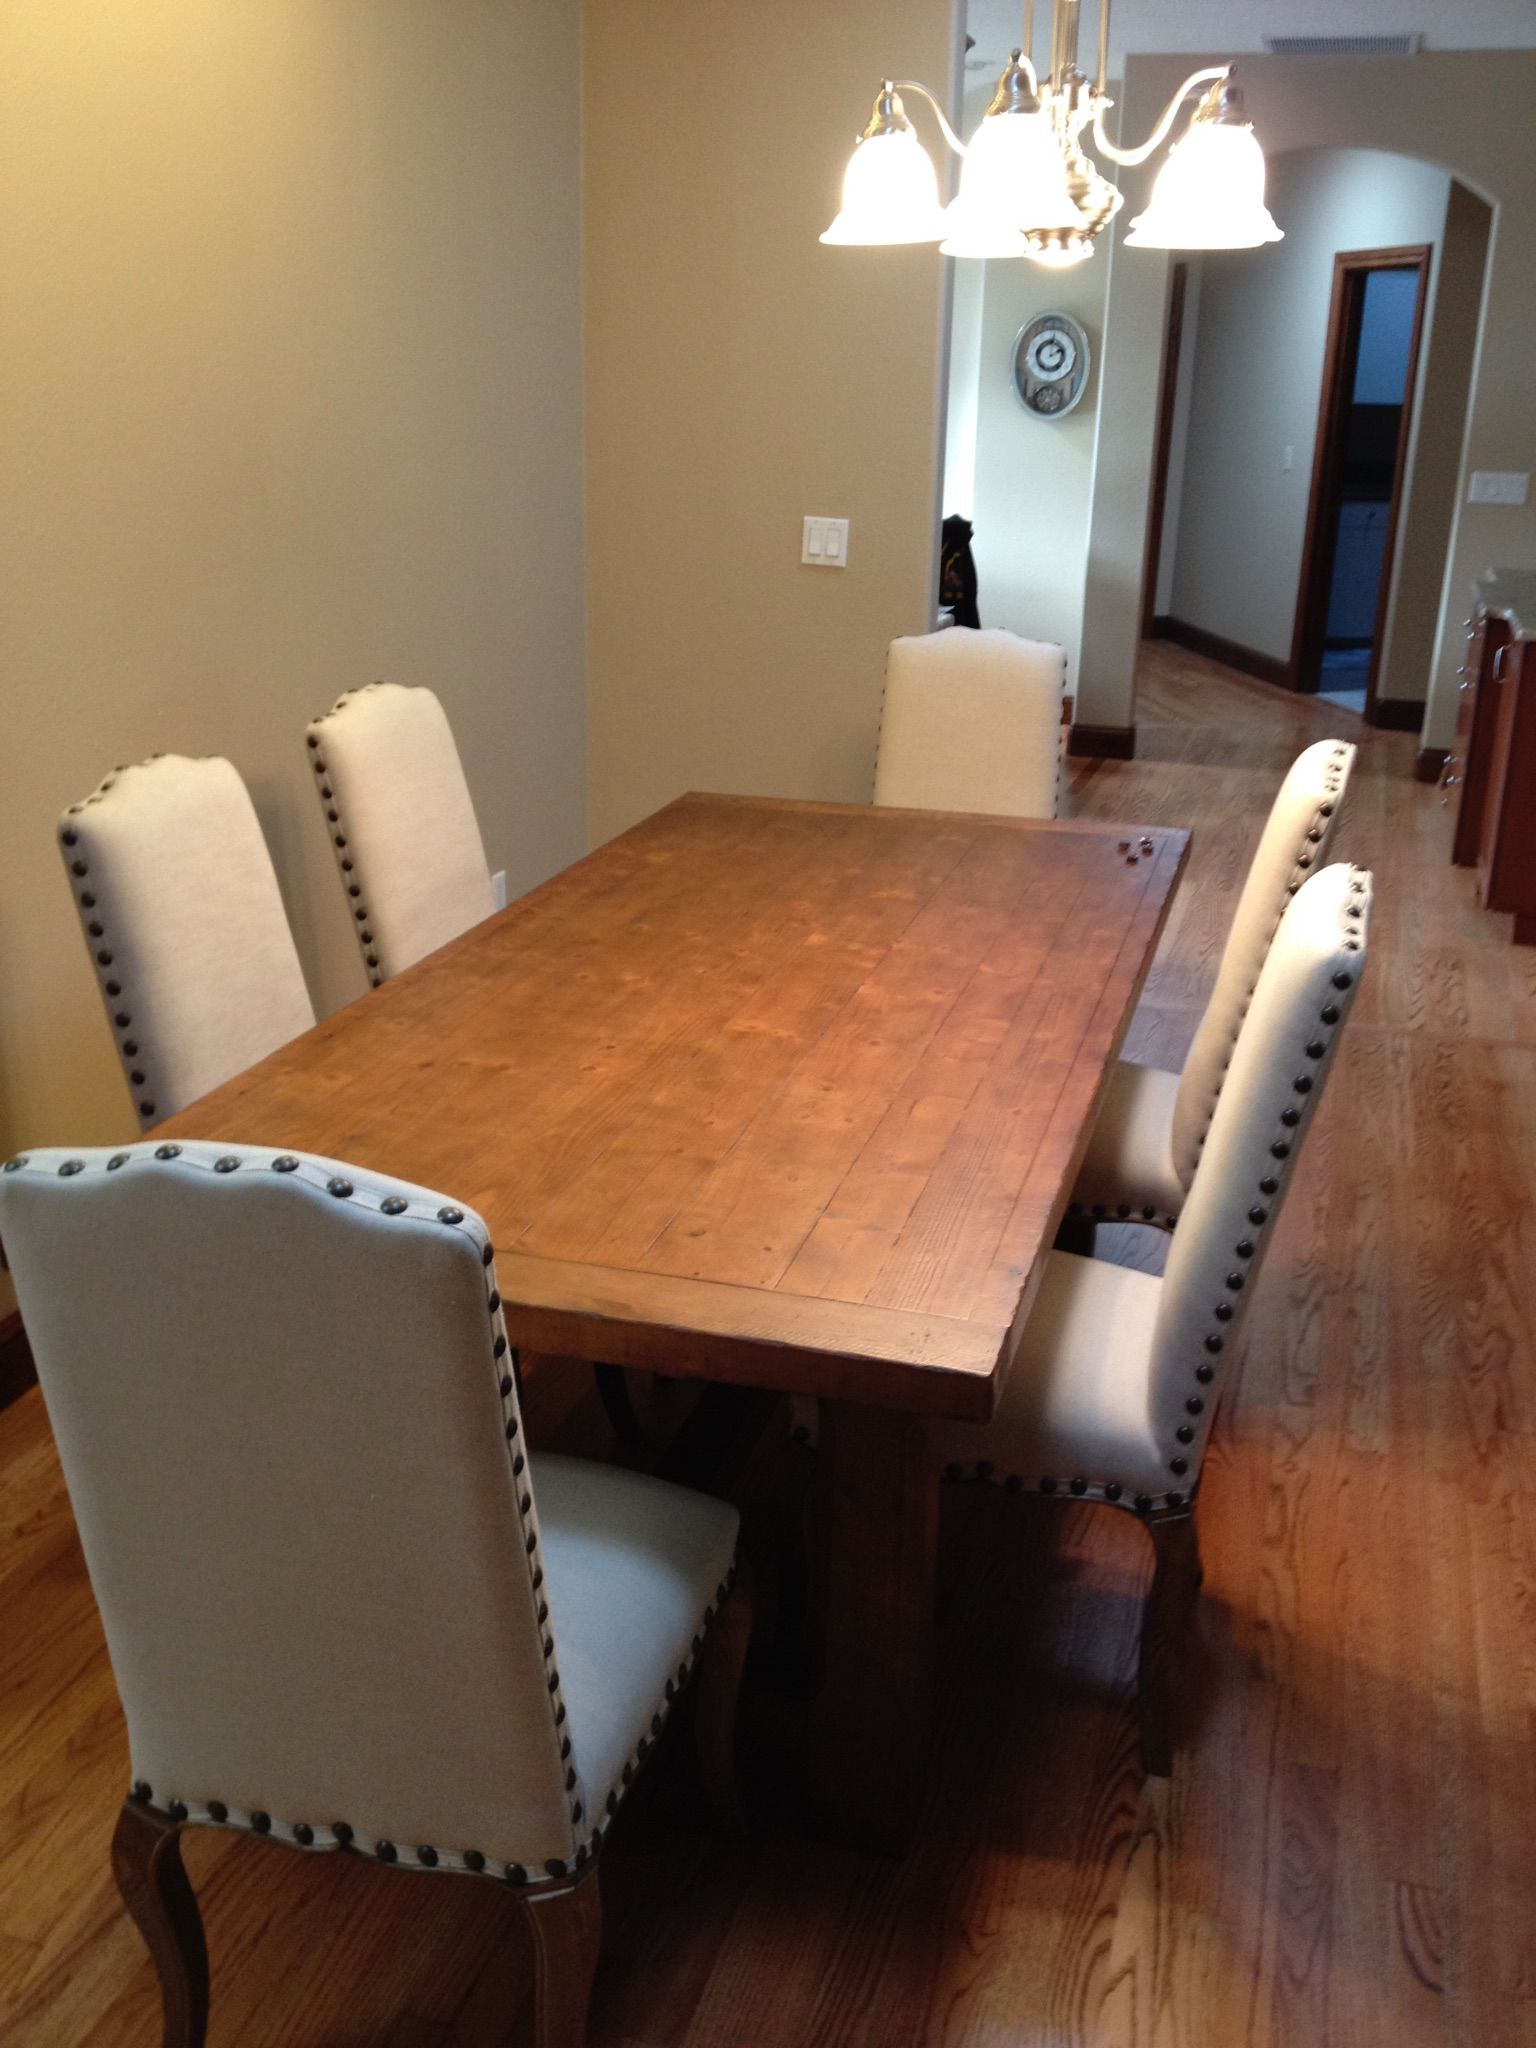 Nw pottery barn calais dining chairs sumner dining table delivered assembled by r a d llc